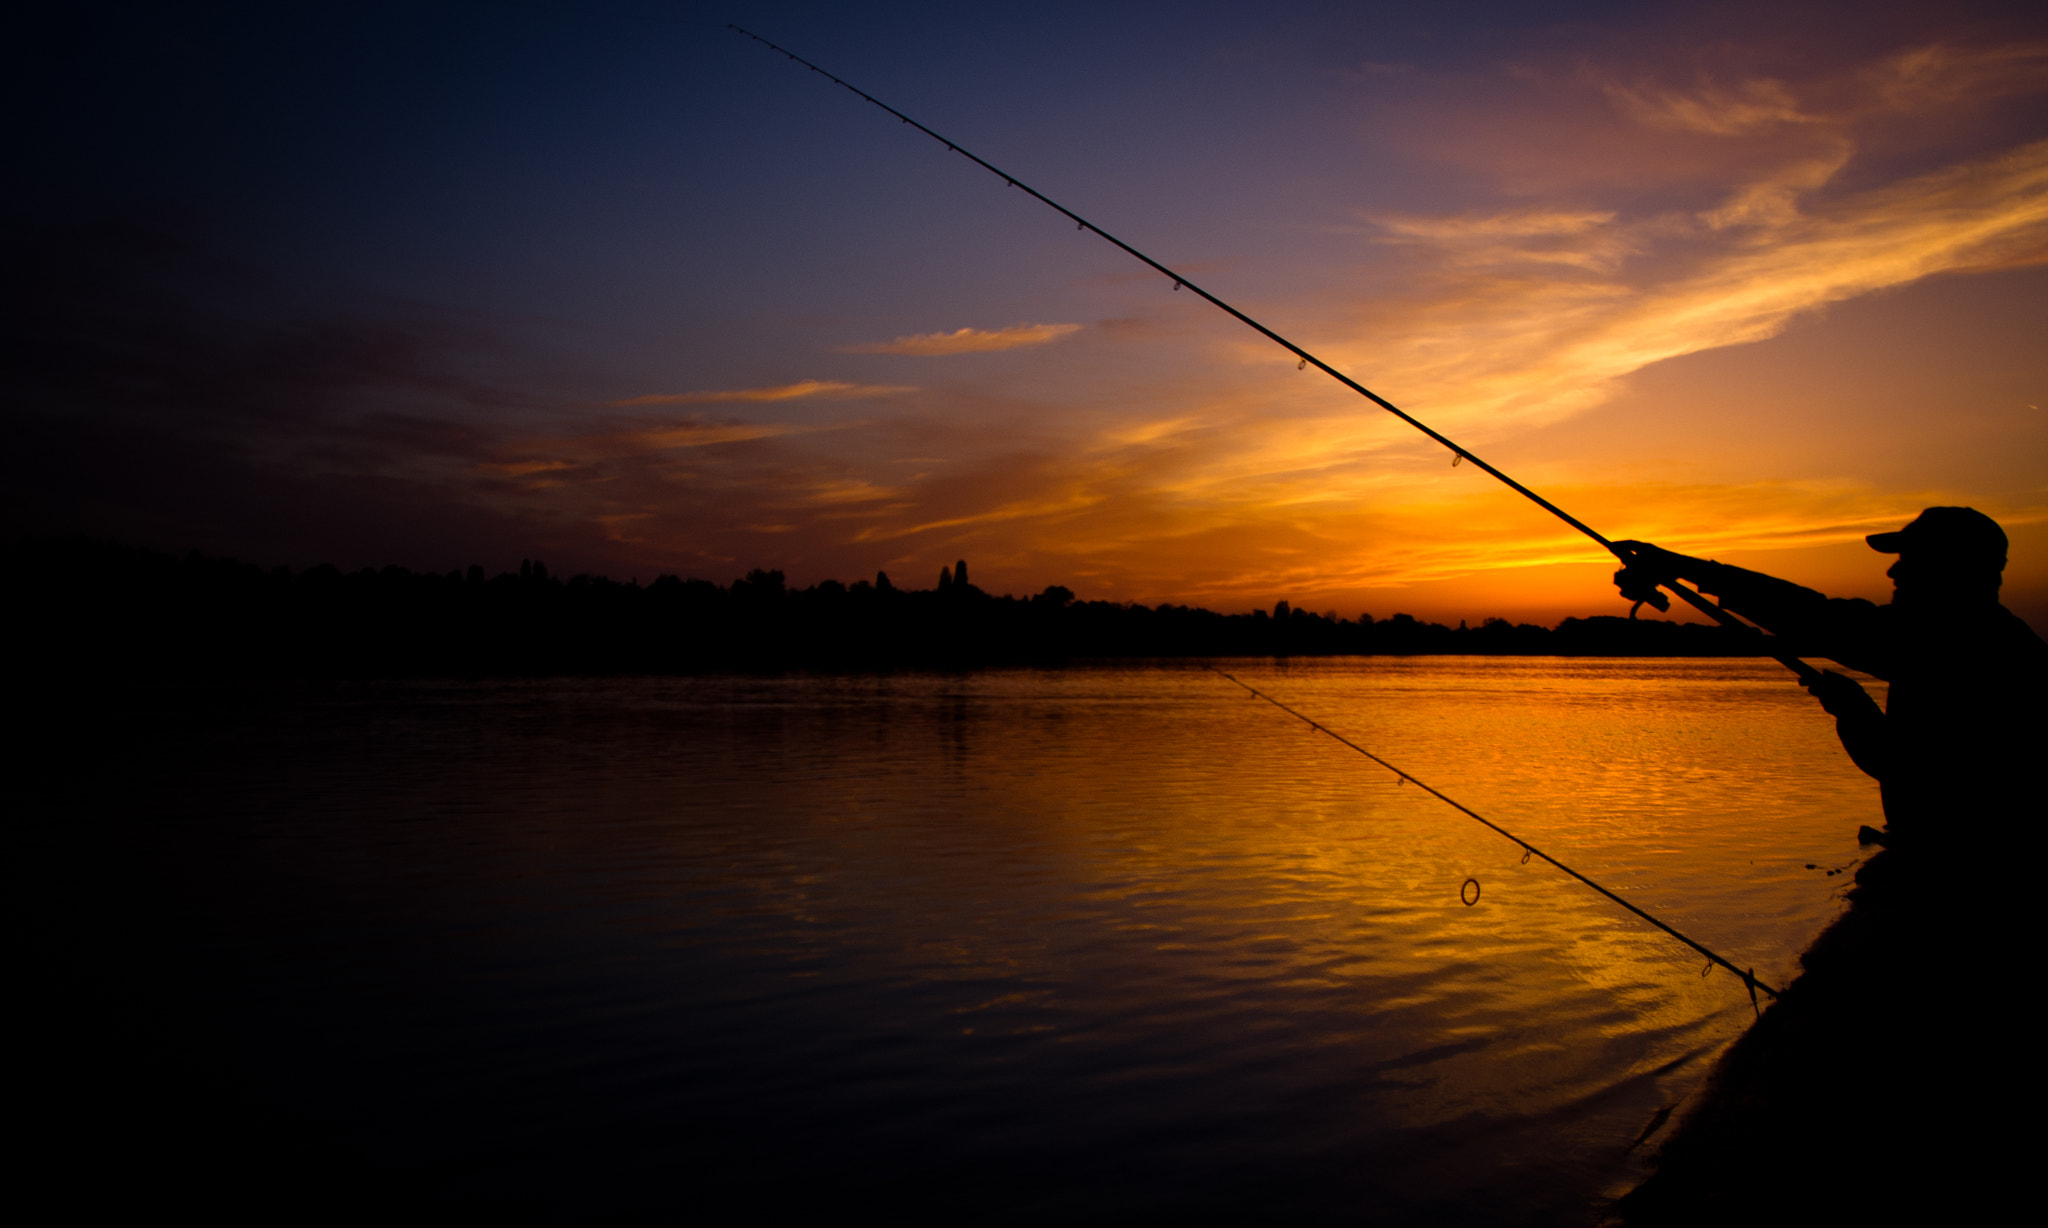 Photograph The night fisher by Gabor Egyed on 500px